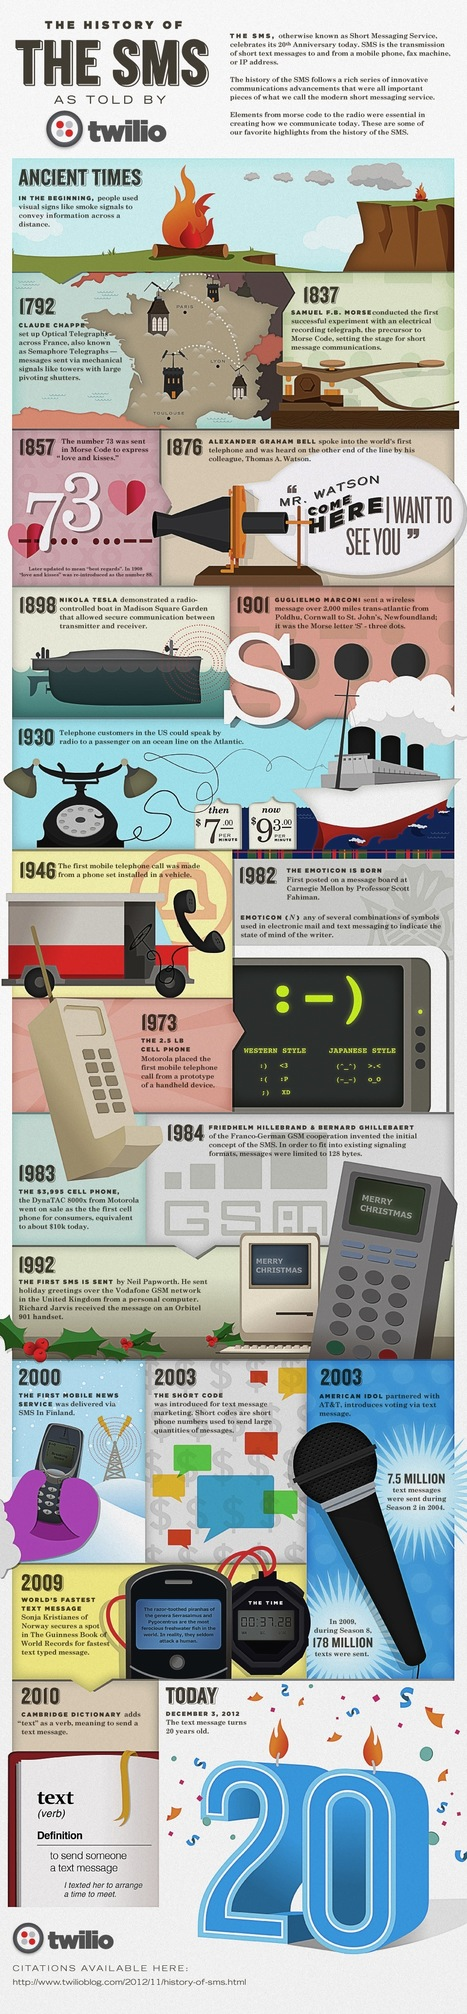 Texting Turns 20: The History of SMS [Infographic] | Daily Infographic | Social Mercor | Scoop.it